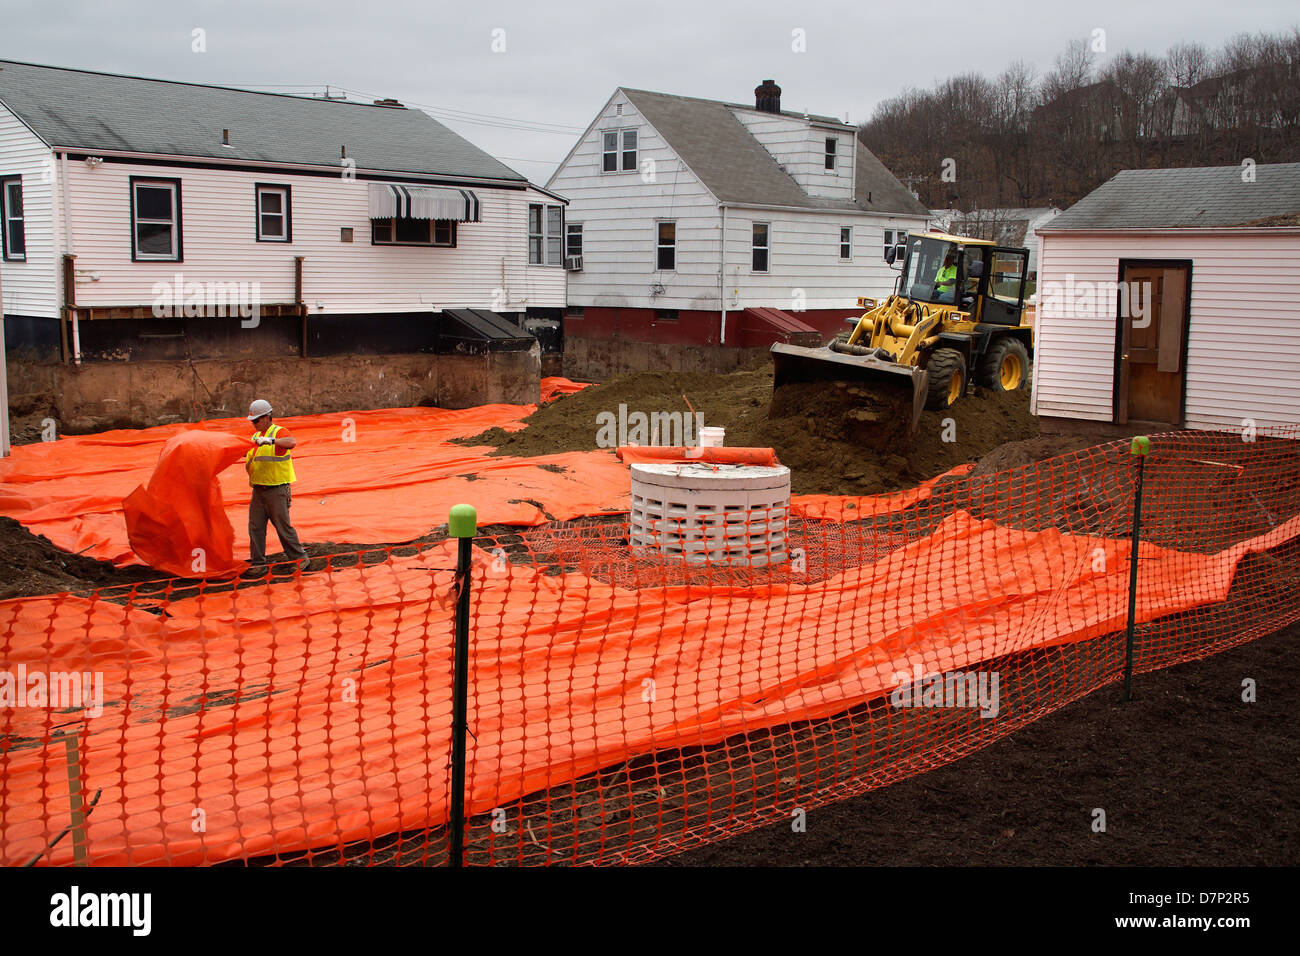 Homes built on polluted soil going through remediation in Hamden CT USA - Stock Image